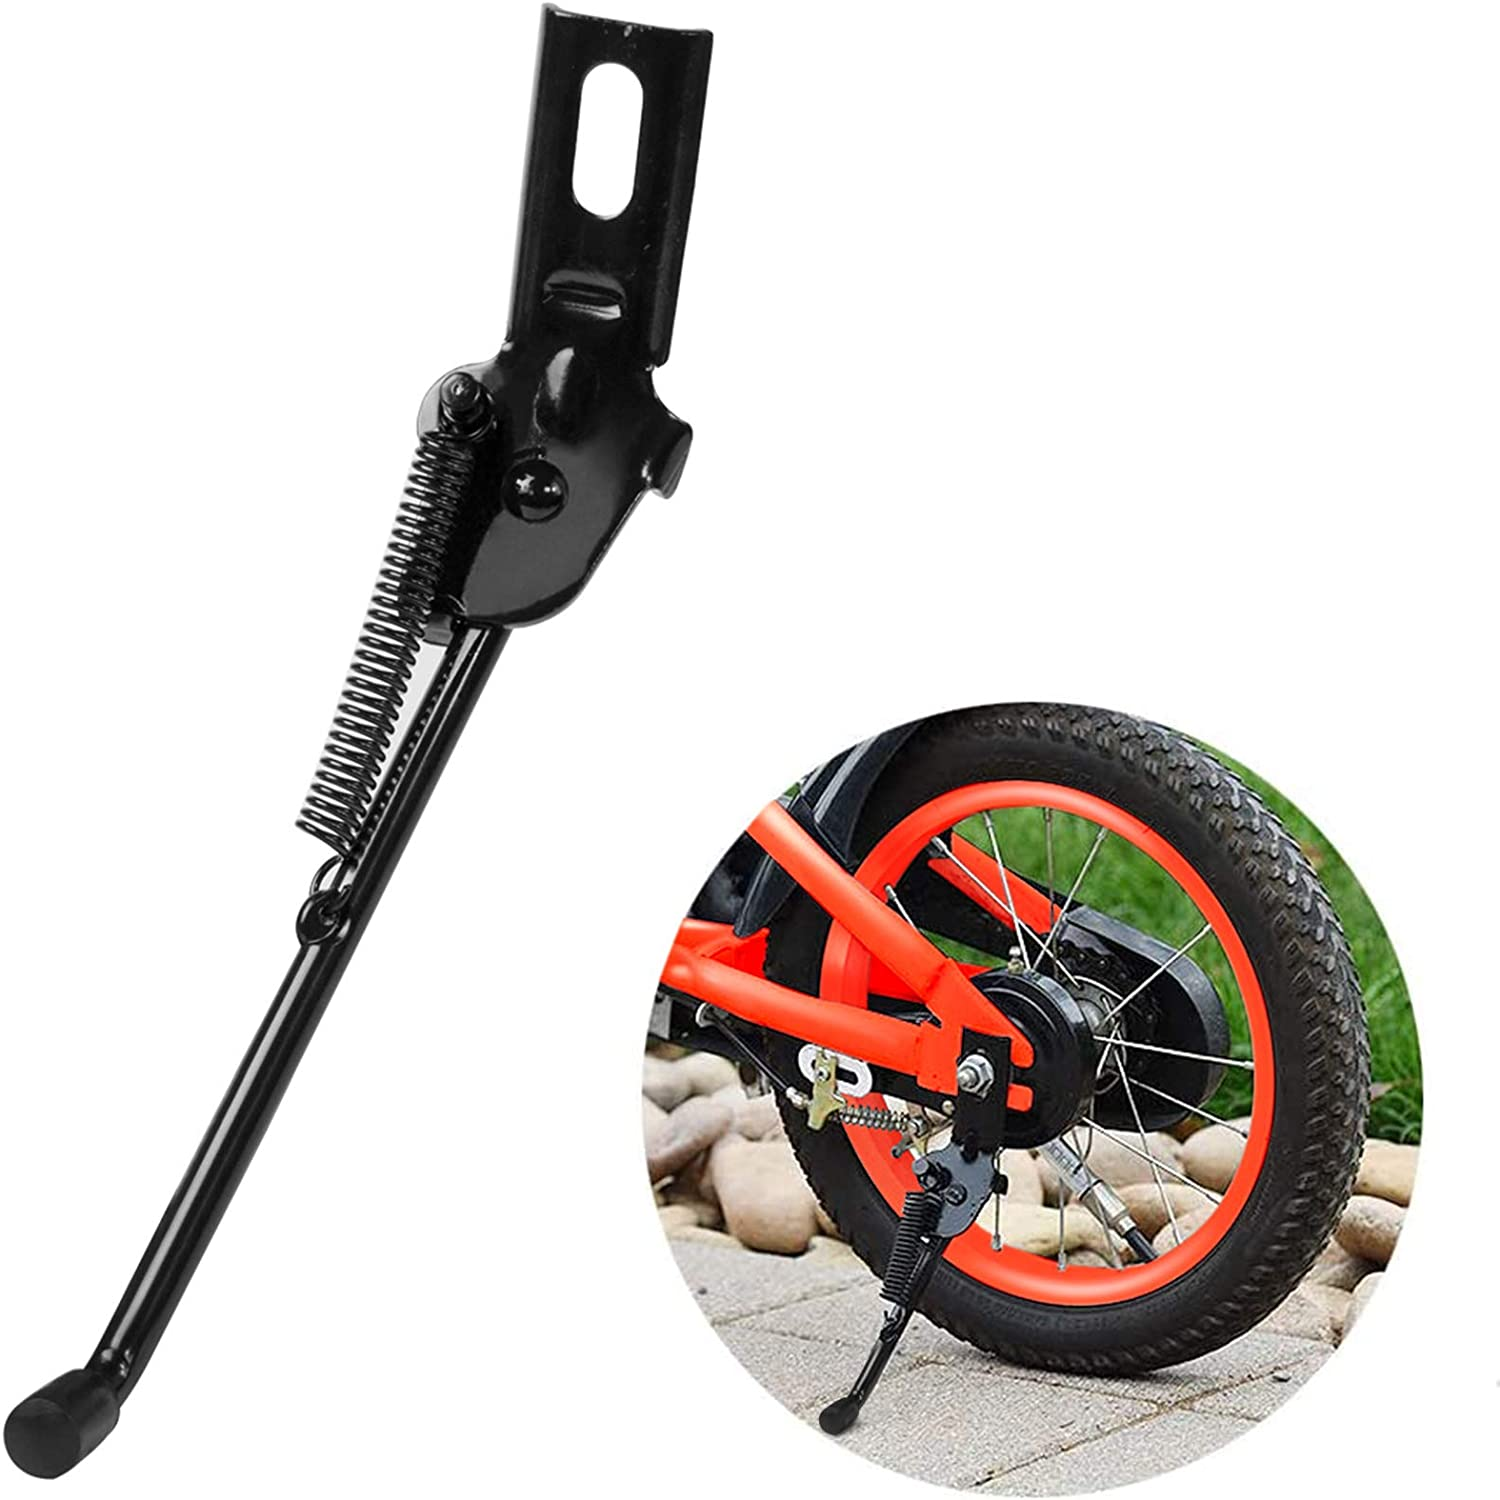 Herasa Kickstand for Kids Bike,12//14//16//18 Inch Bicycle Kickstand Replacement for Training Wheel Made of Upgraded Version Premium Carbon Steel